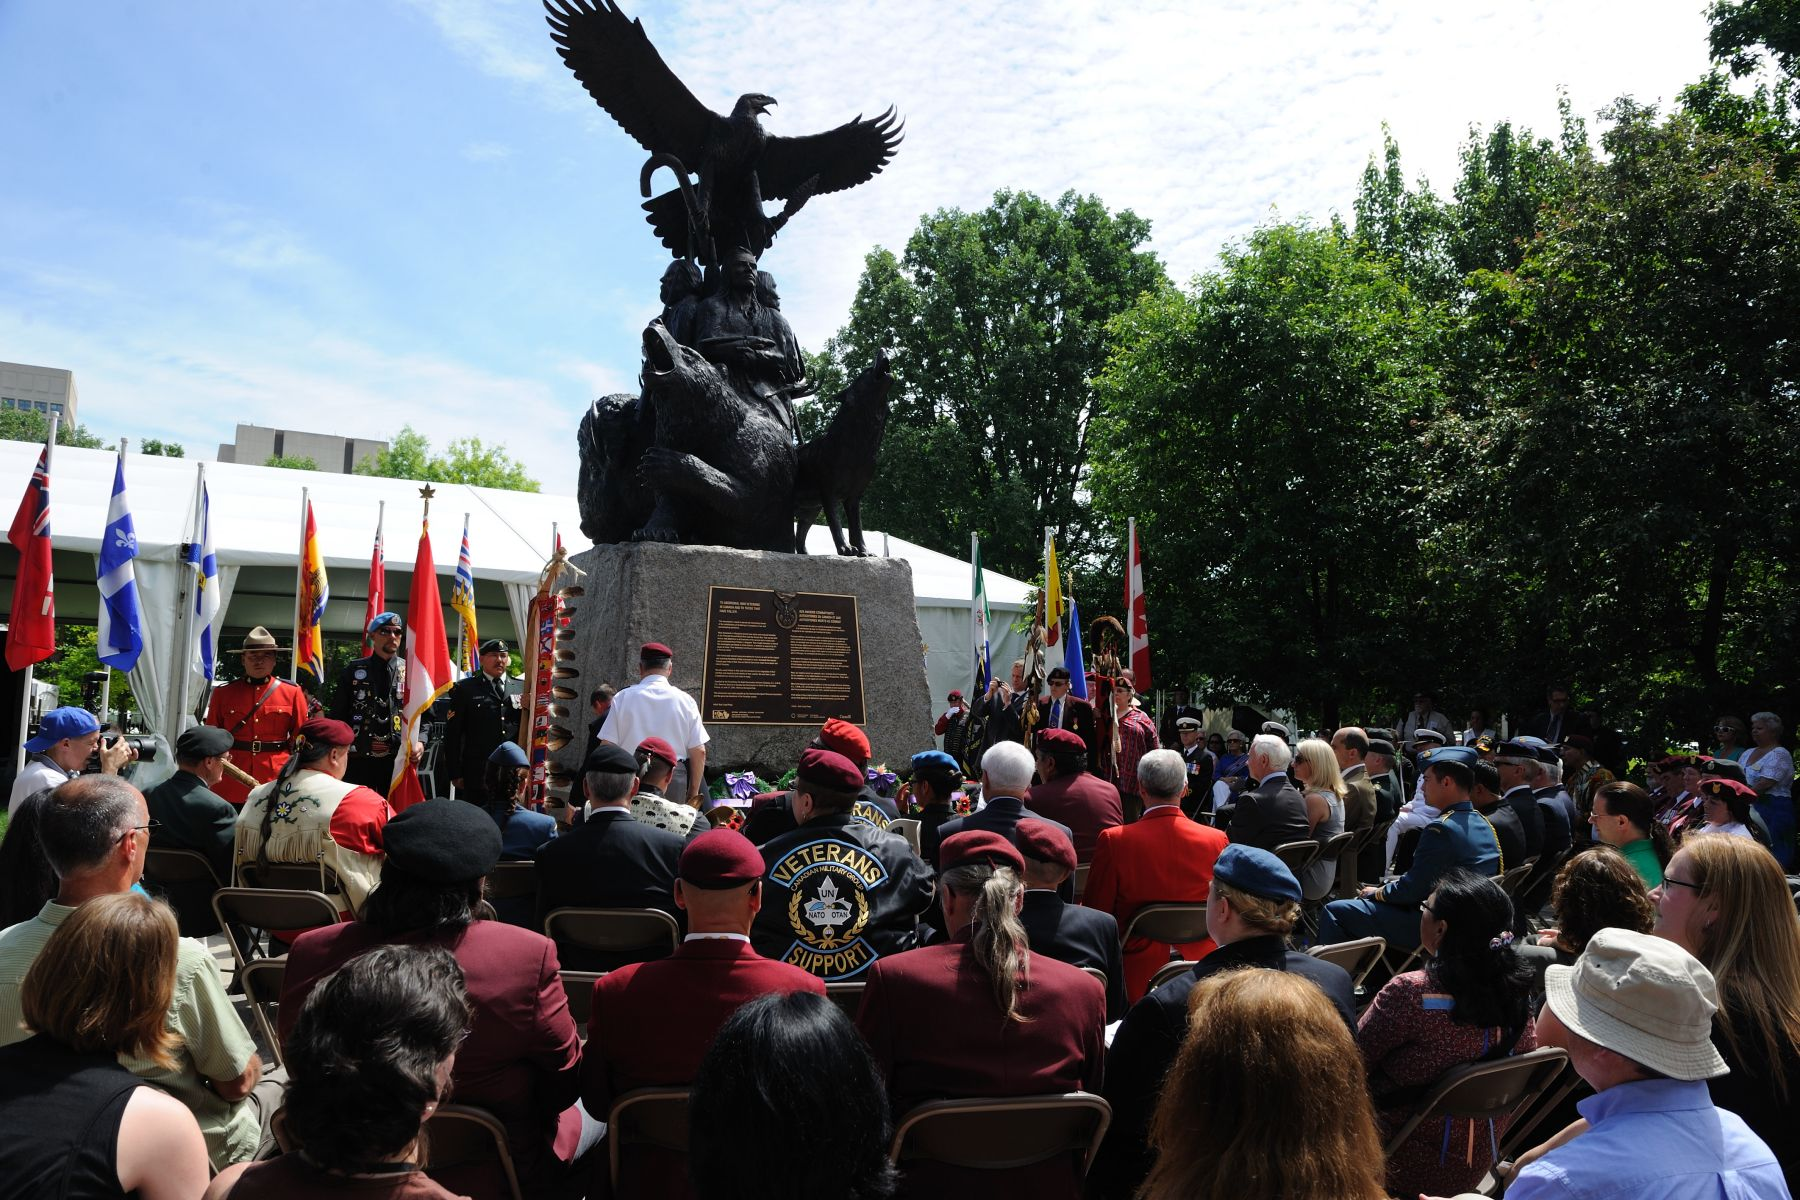 Located in Ottawa's Confederation Park, the National Aboriginal Veterans Monument was unveiled 10 years ago, on June 21, 2001, by the Right Honourable Adrienne Clarkson.